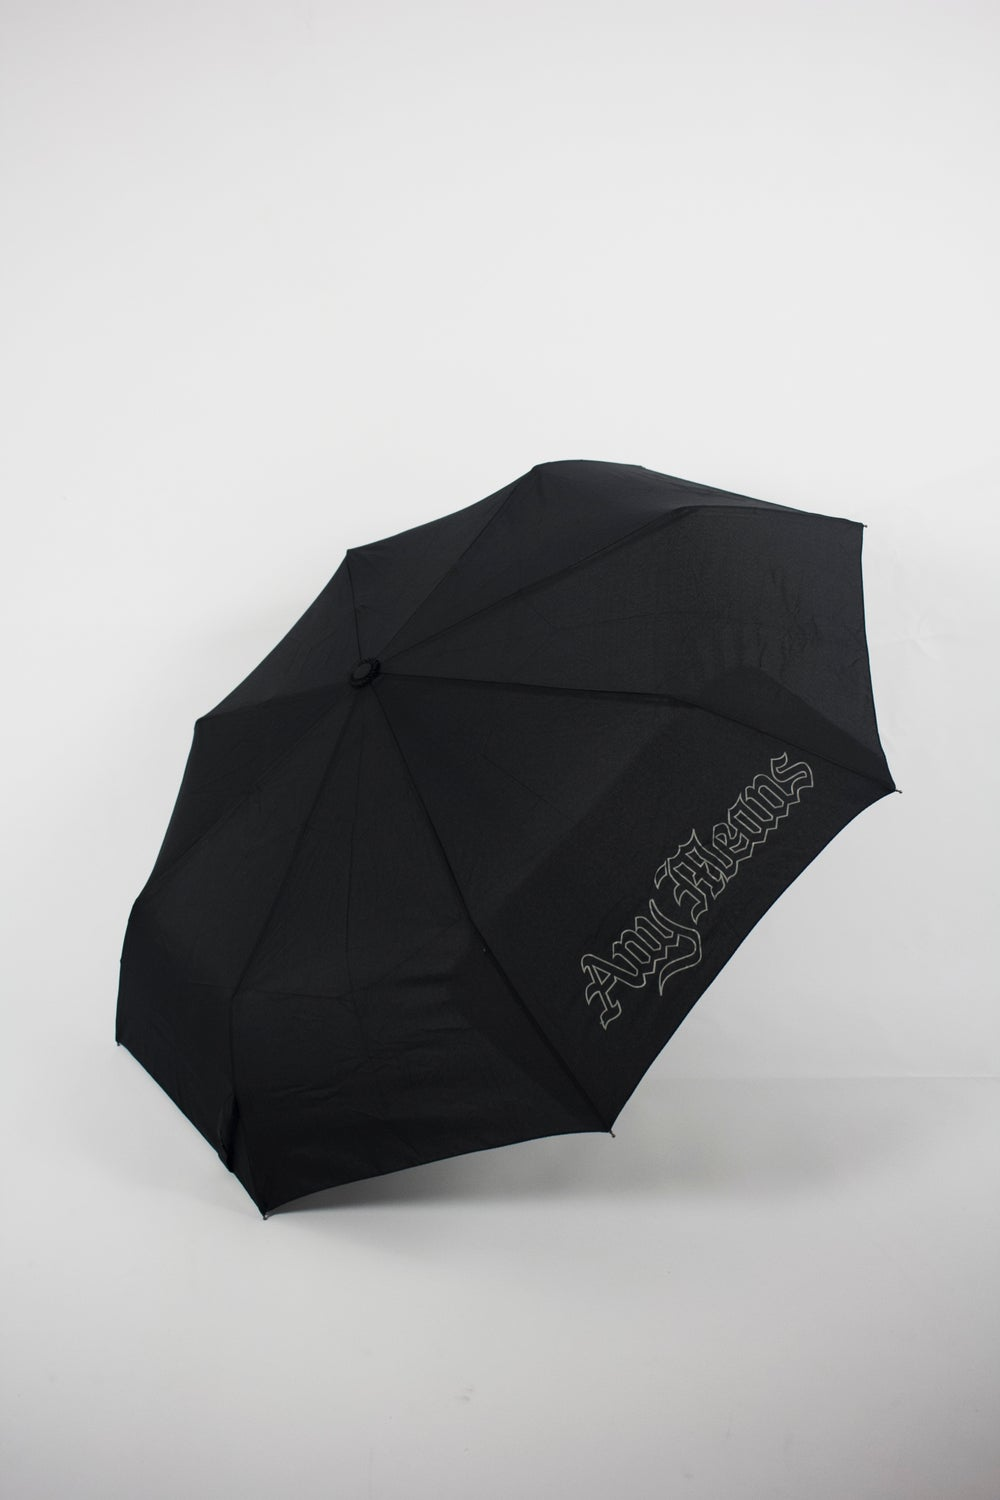 Image of Compact Umbrella in Black